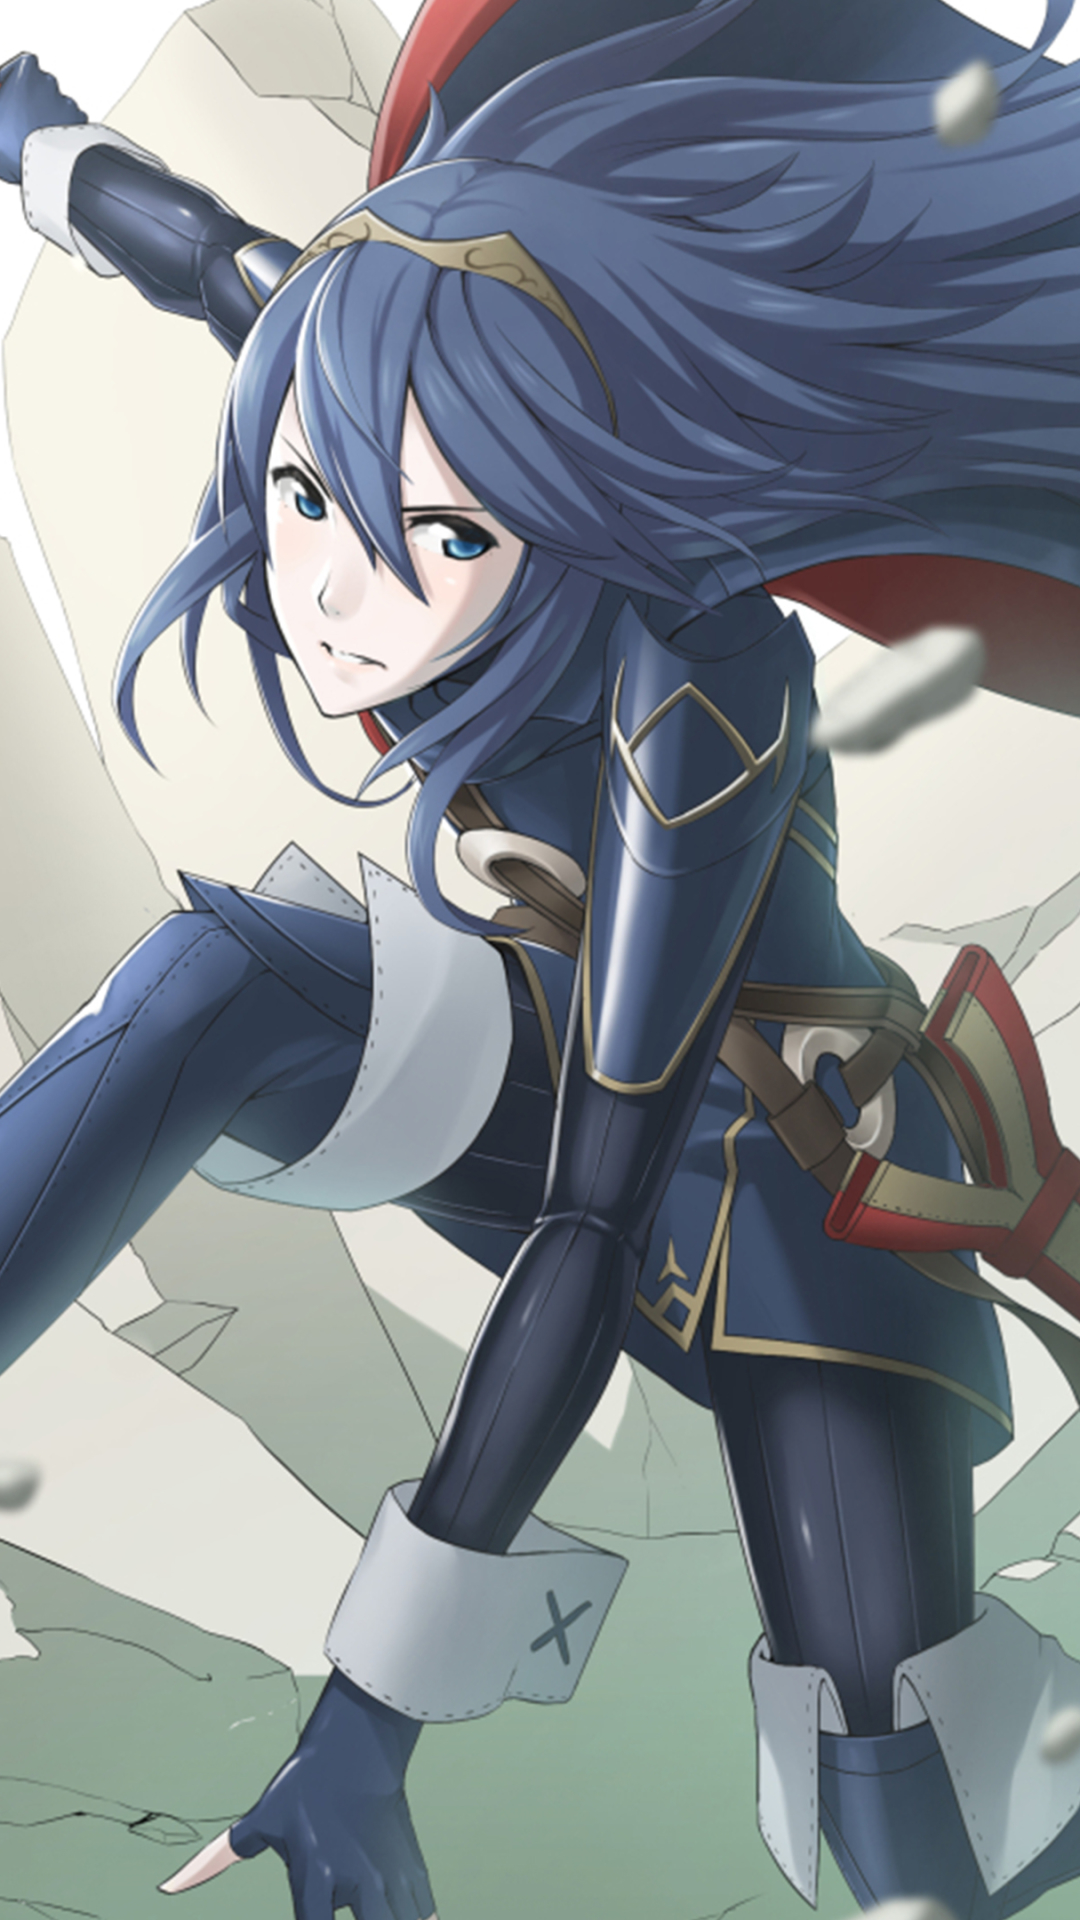 Video Game Fire Emblem Awakening 1080x1920 Wallpaper Id 766868